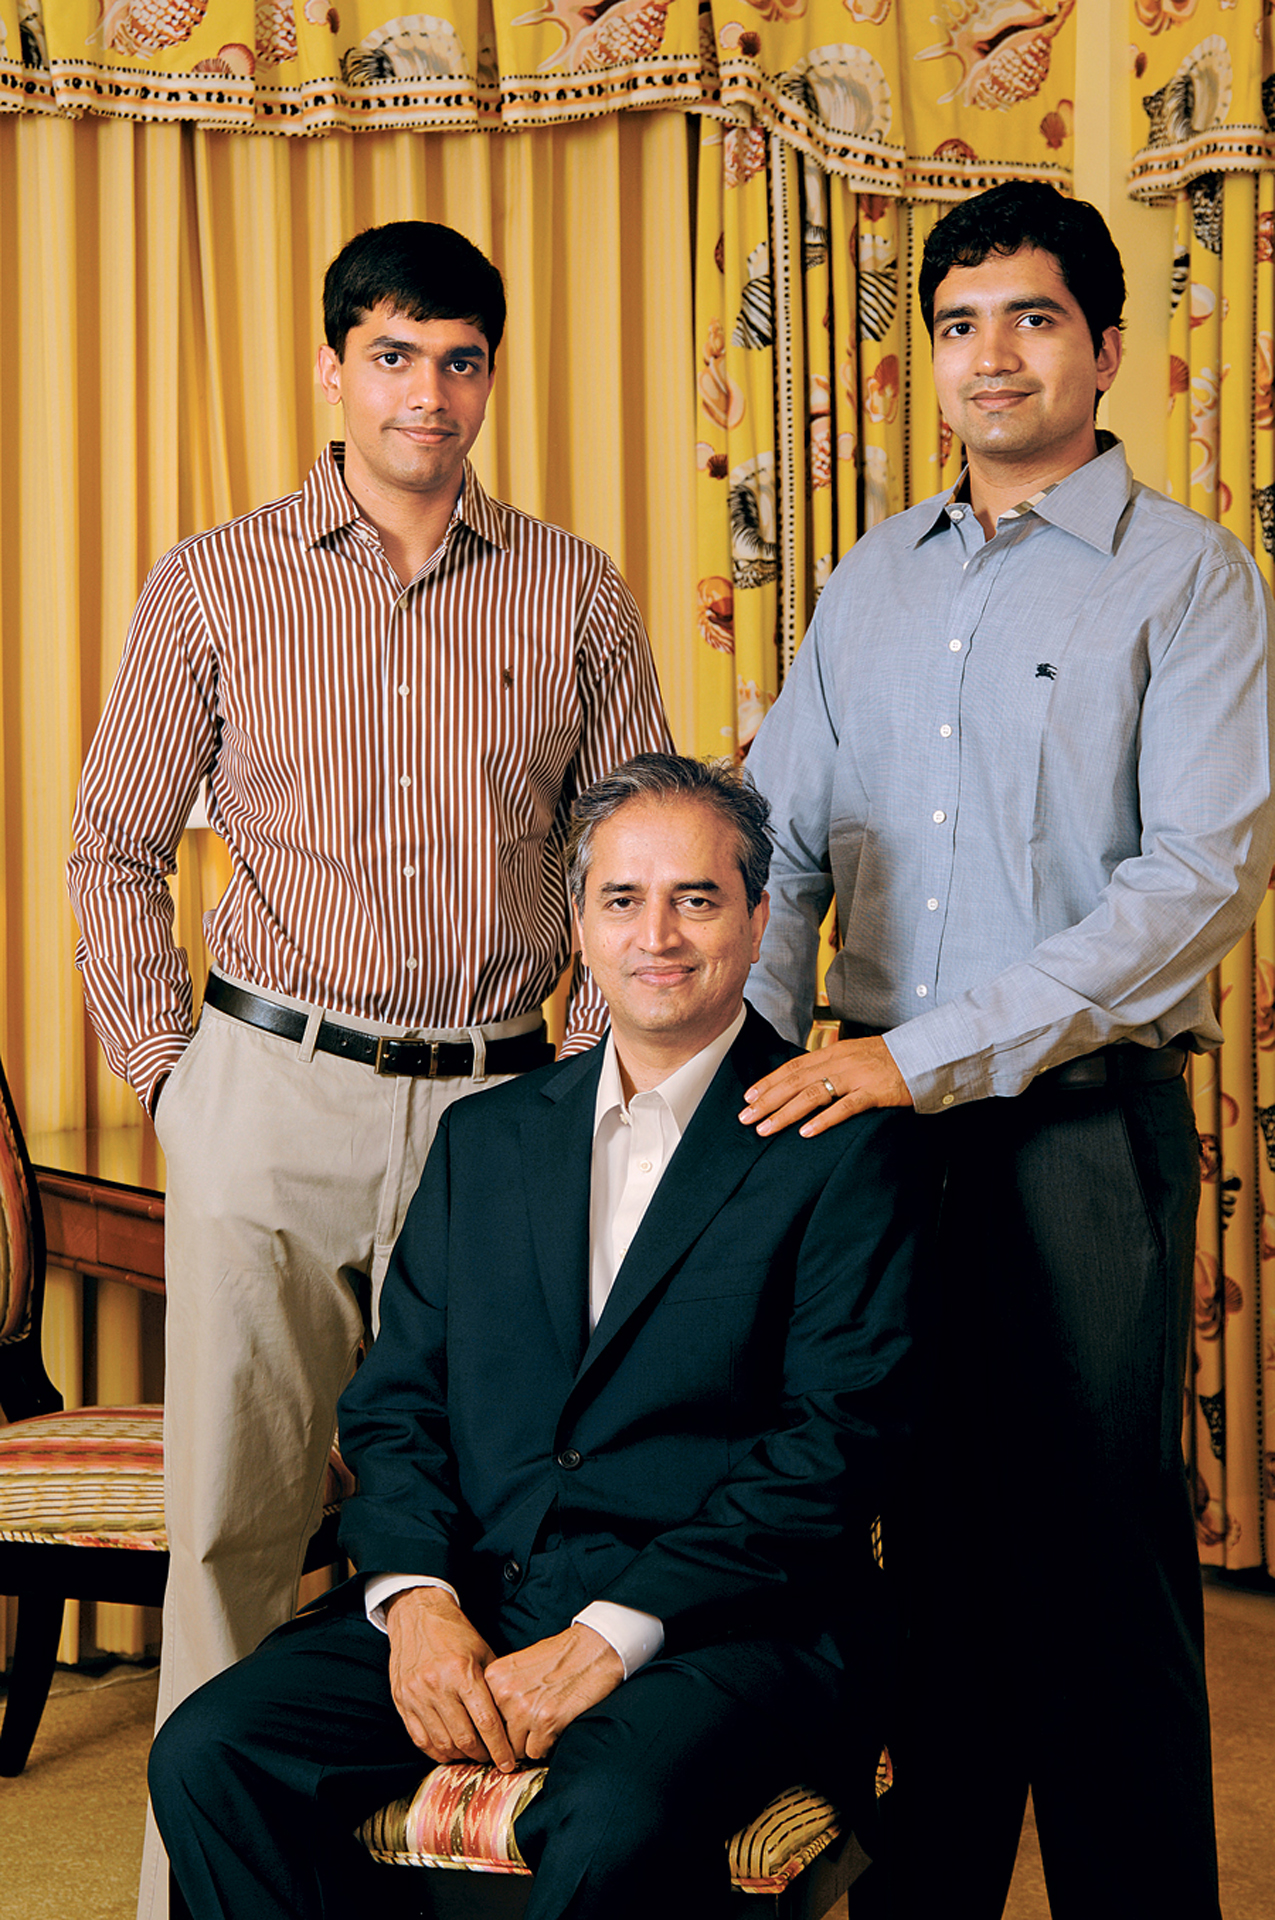 Dr Shetty with sons Viren Shetty and Varun Shetty